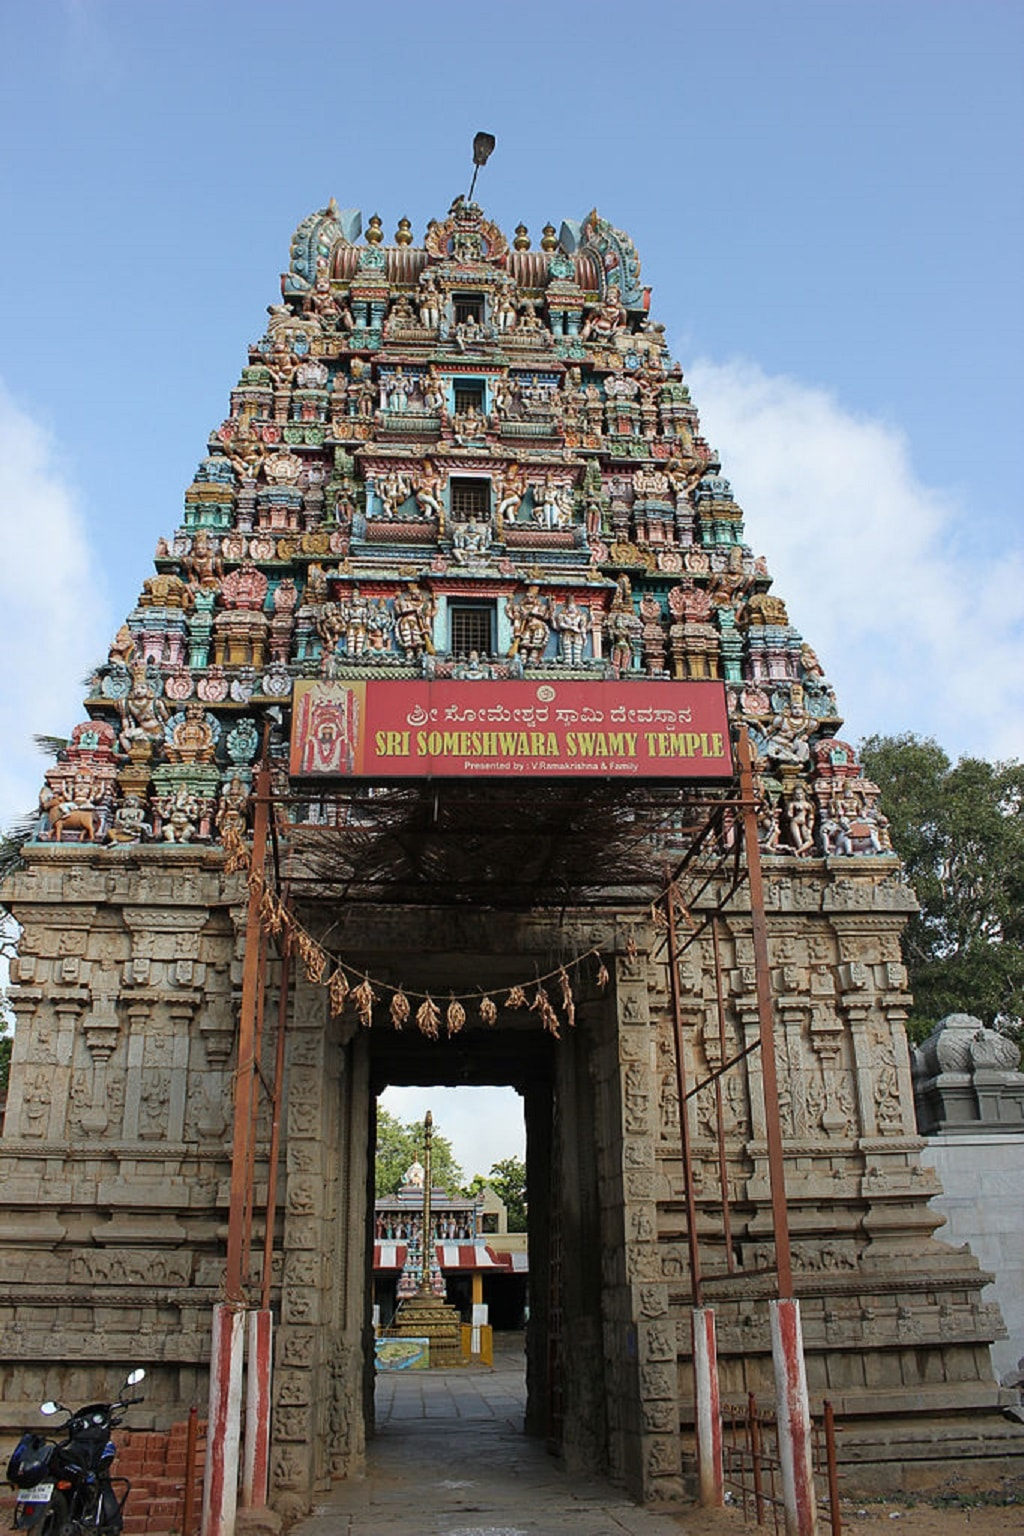 Someshwara temple